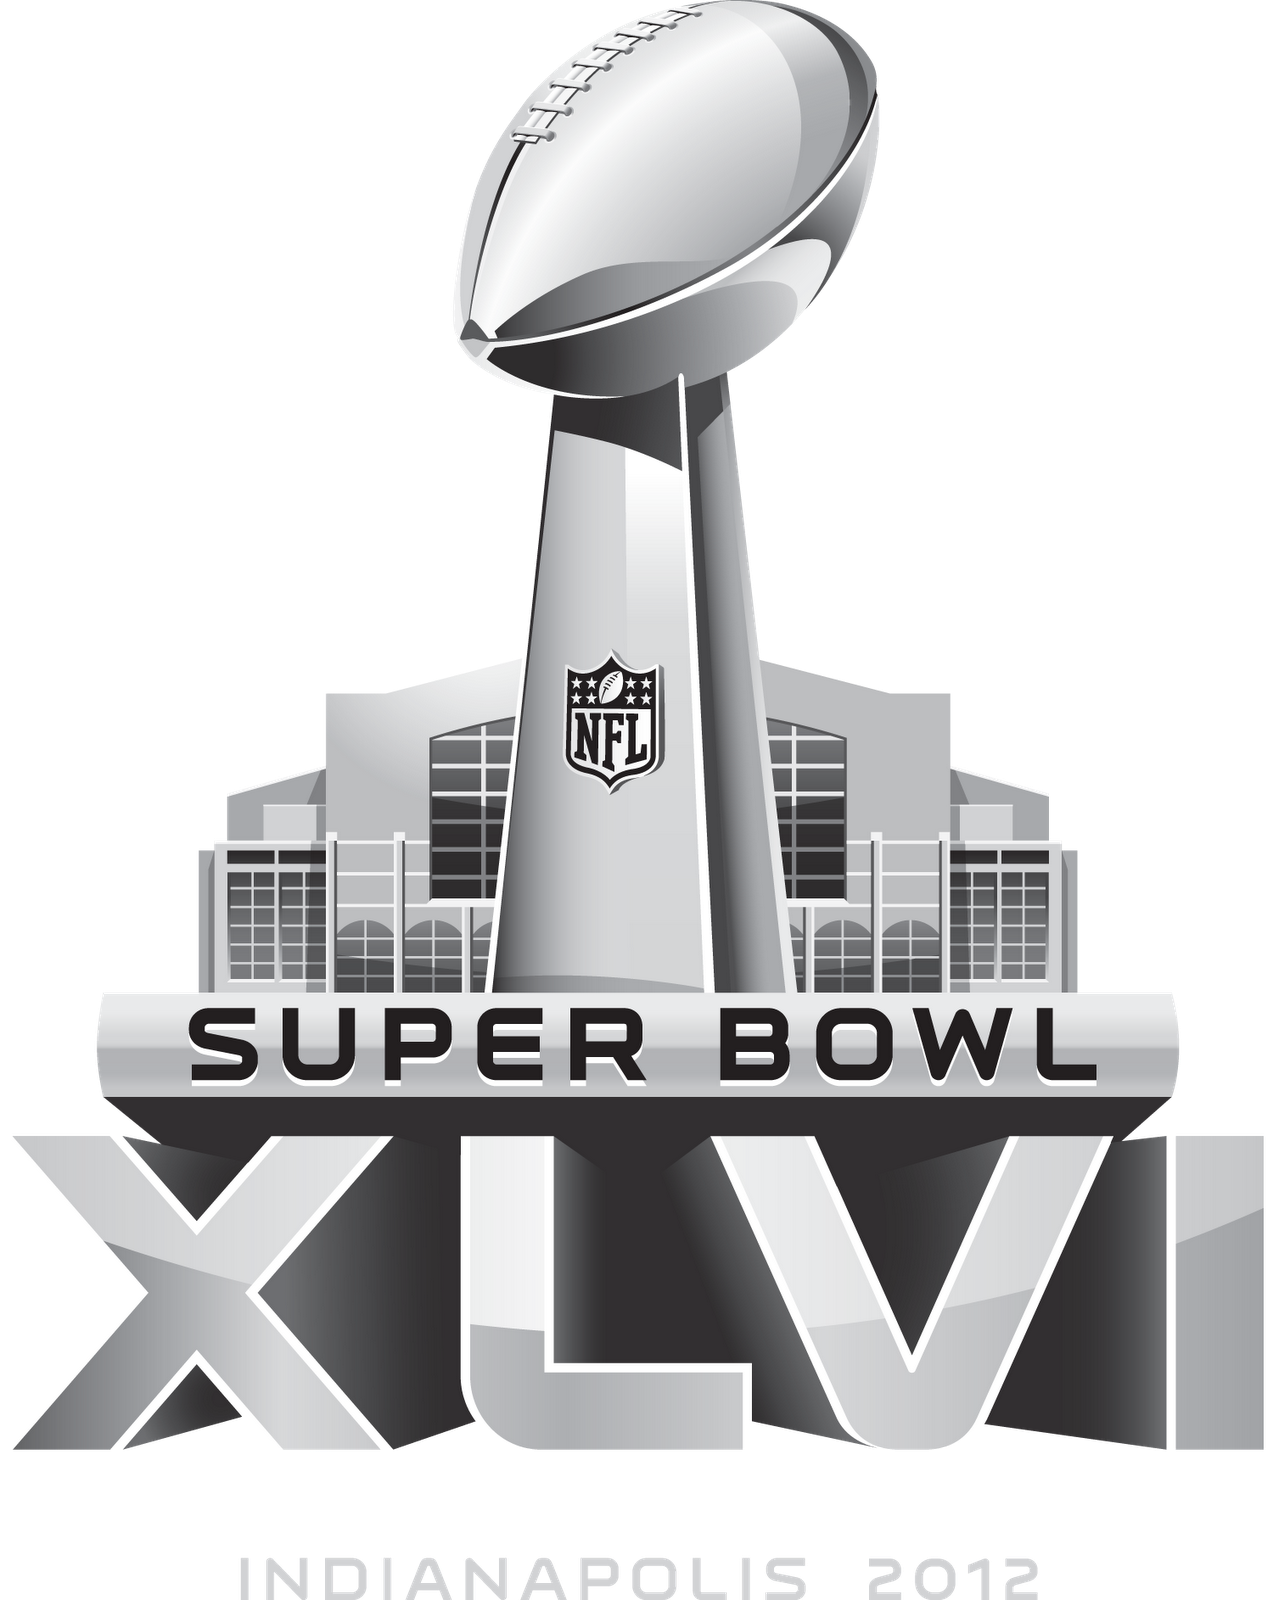 Super bowl logo 2017 png. Transparent images pluspng pluspngcom